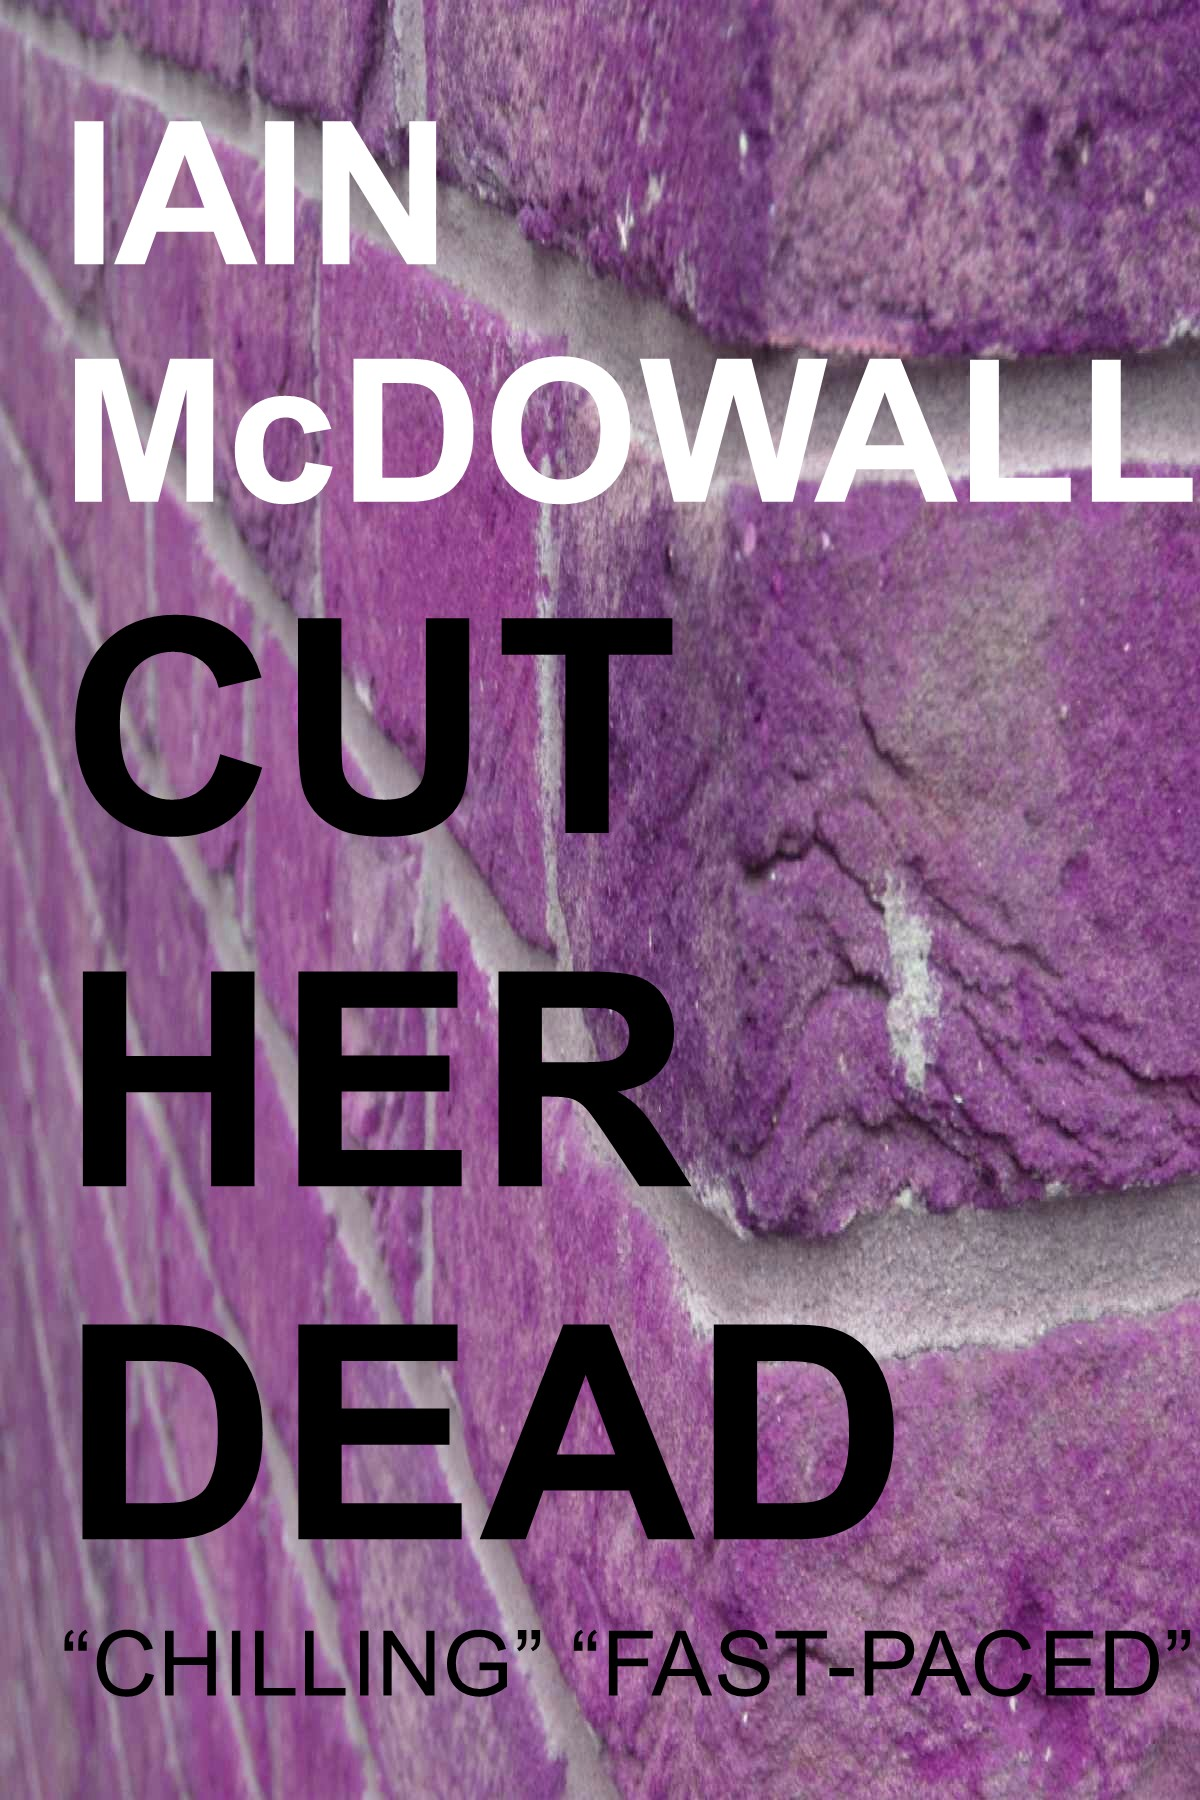 Cut Her Dead: new 2019 e-book edition on sale now